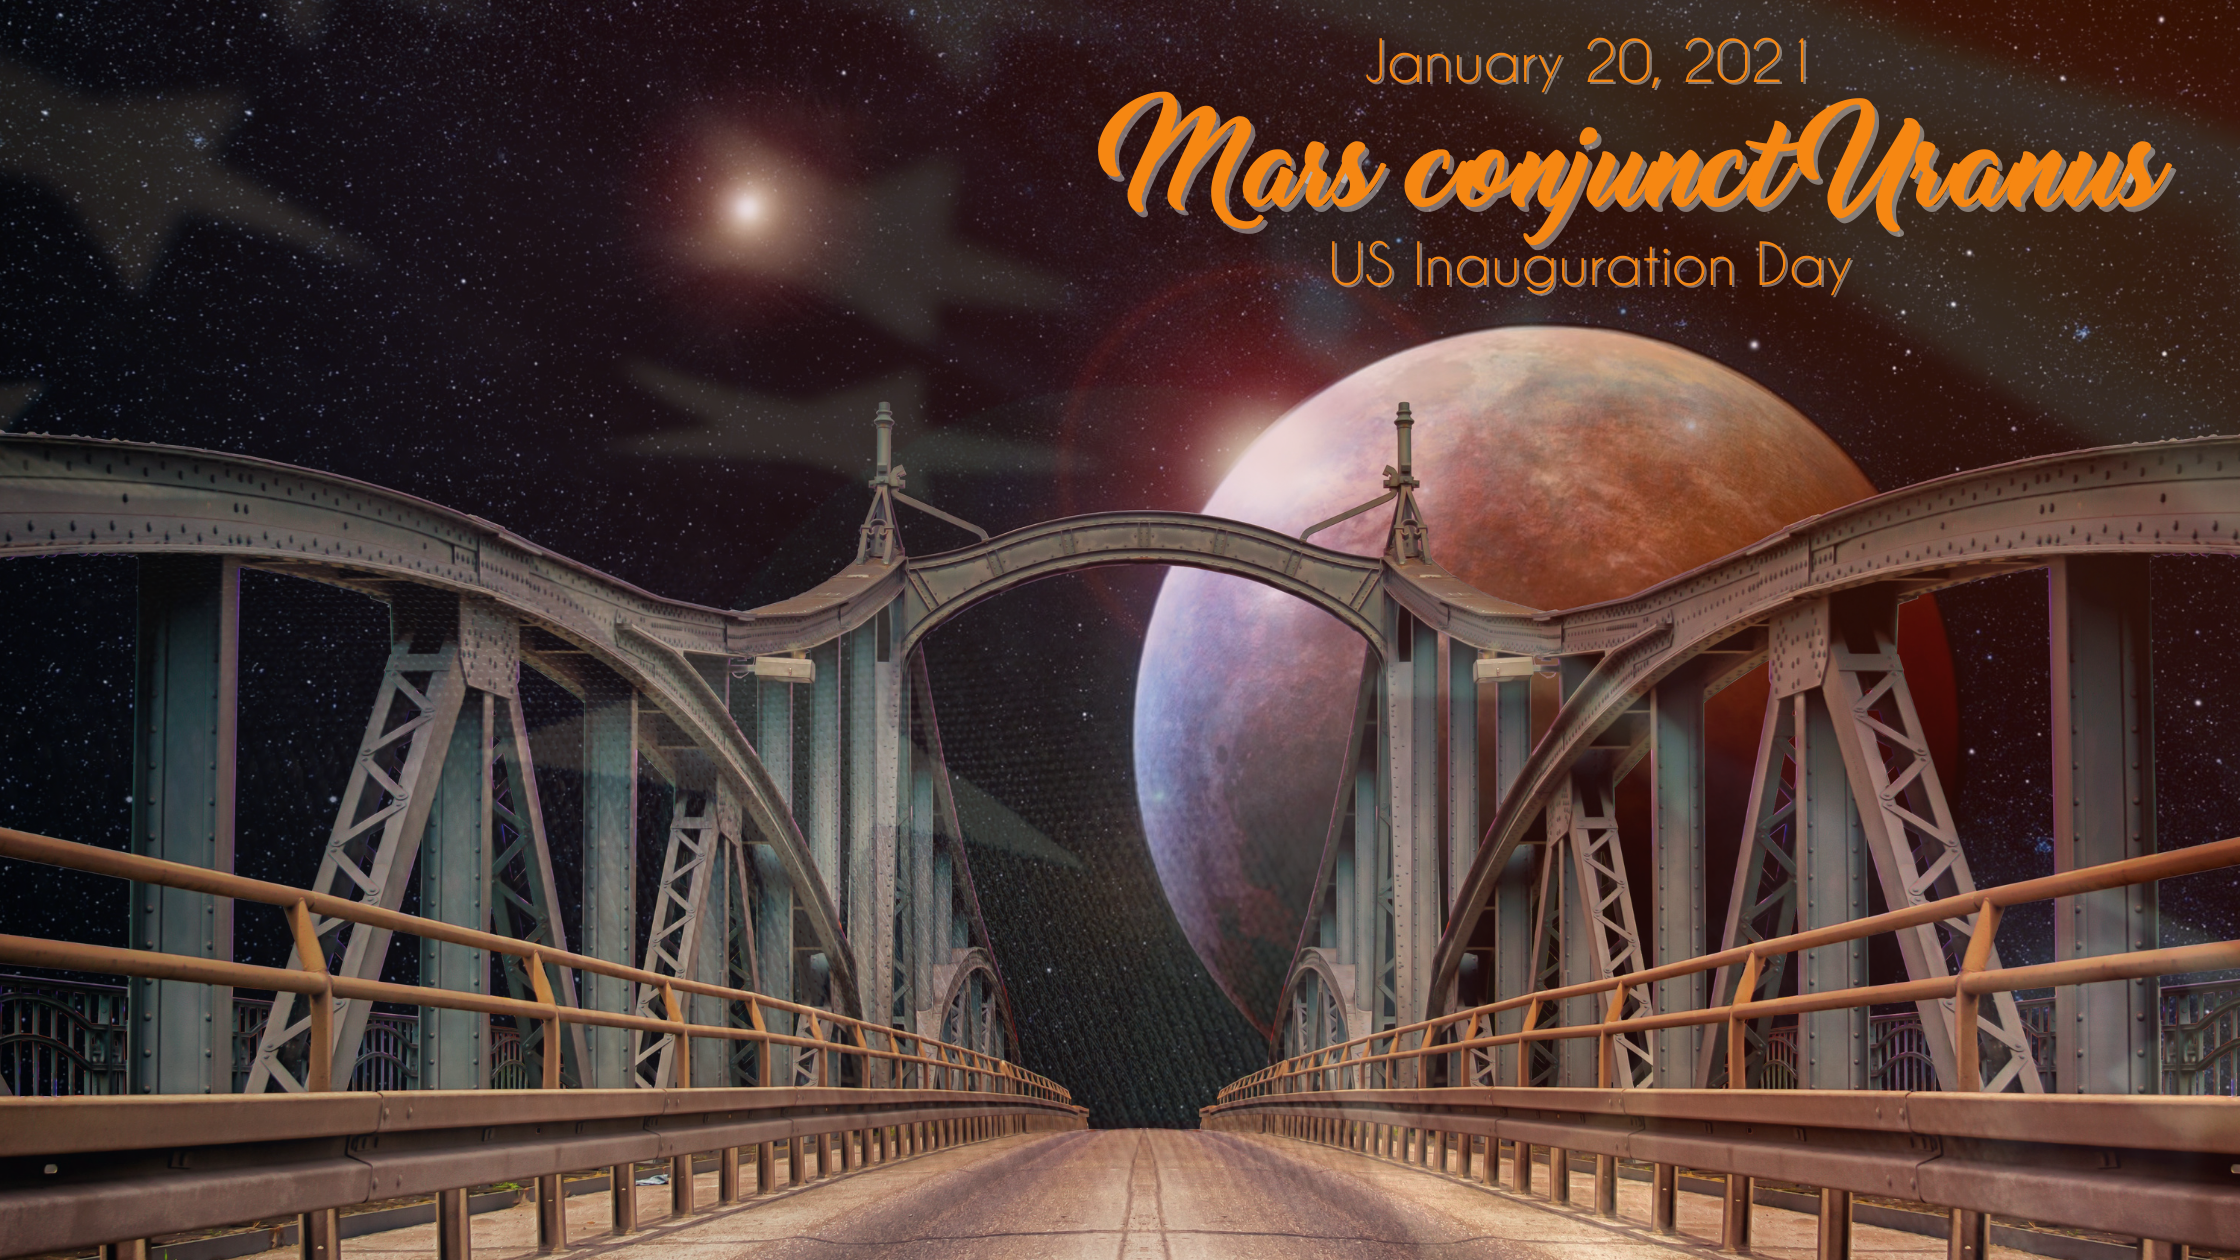 Mars conjunct Uranus – January 20, 2021